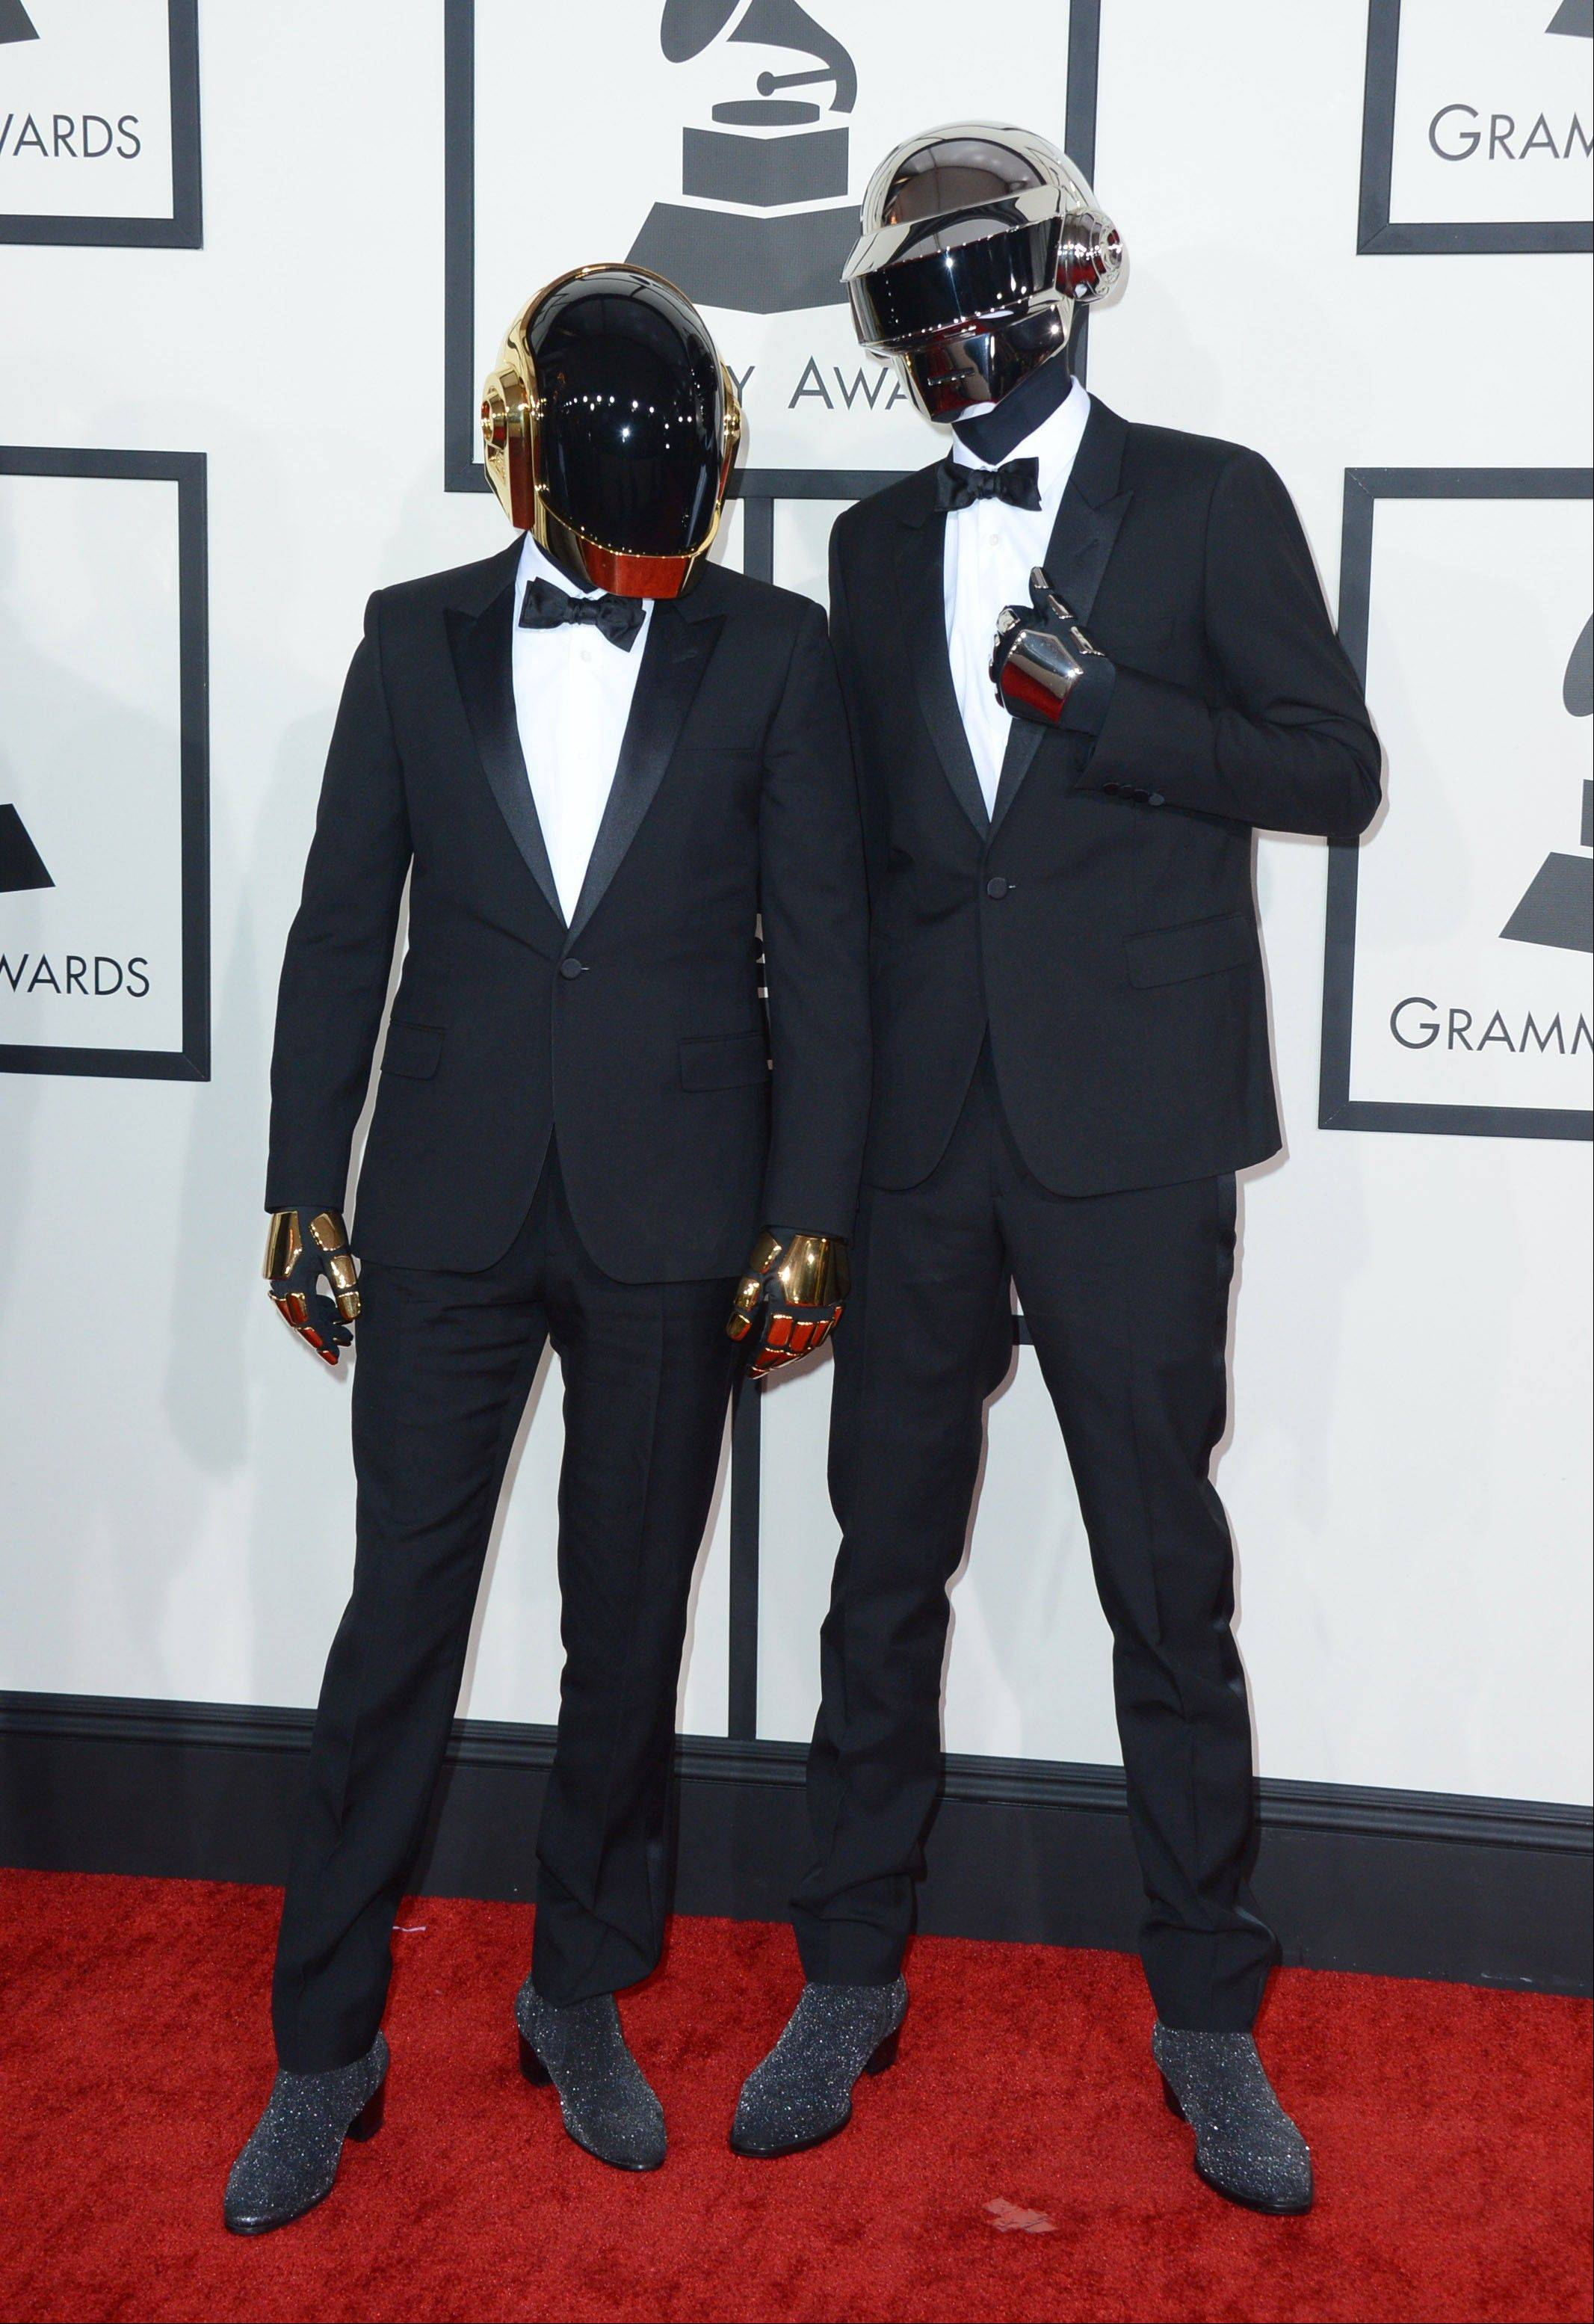 Daft Punk arrives at the 56th annual Grammy Awards at Staples Center on Sunday.